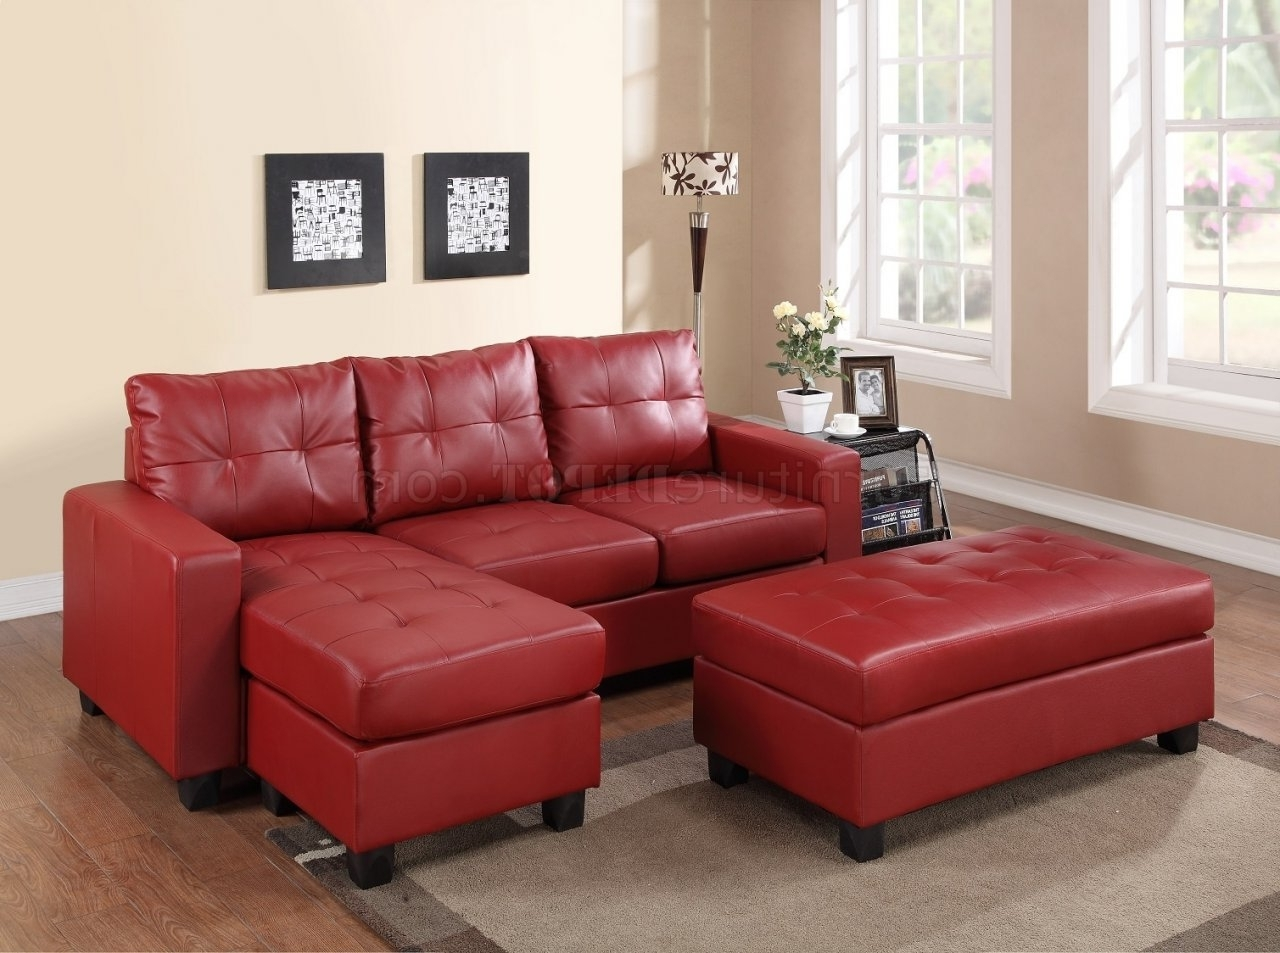 Michigan Sectional Sofas With Preferred 2511 Sectional Sofa Set In Red Bonded Leather Match Pu (View 11 of 20)